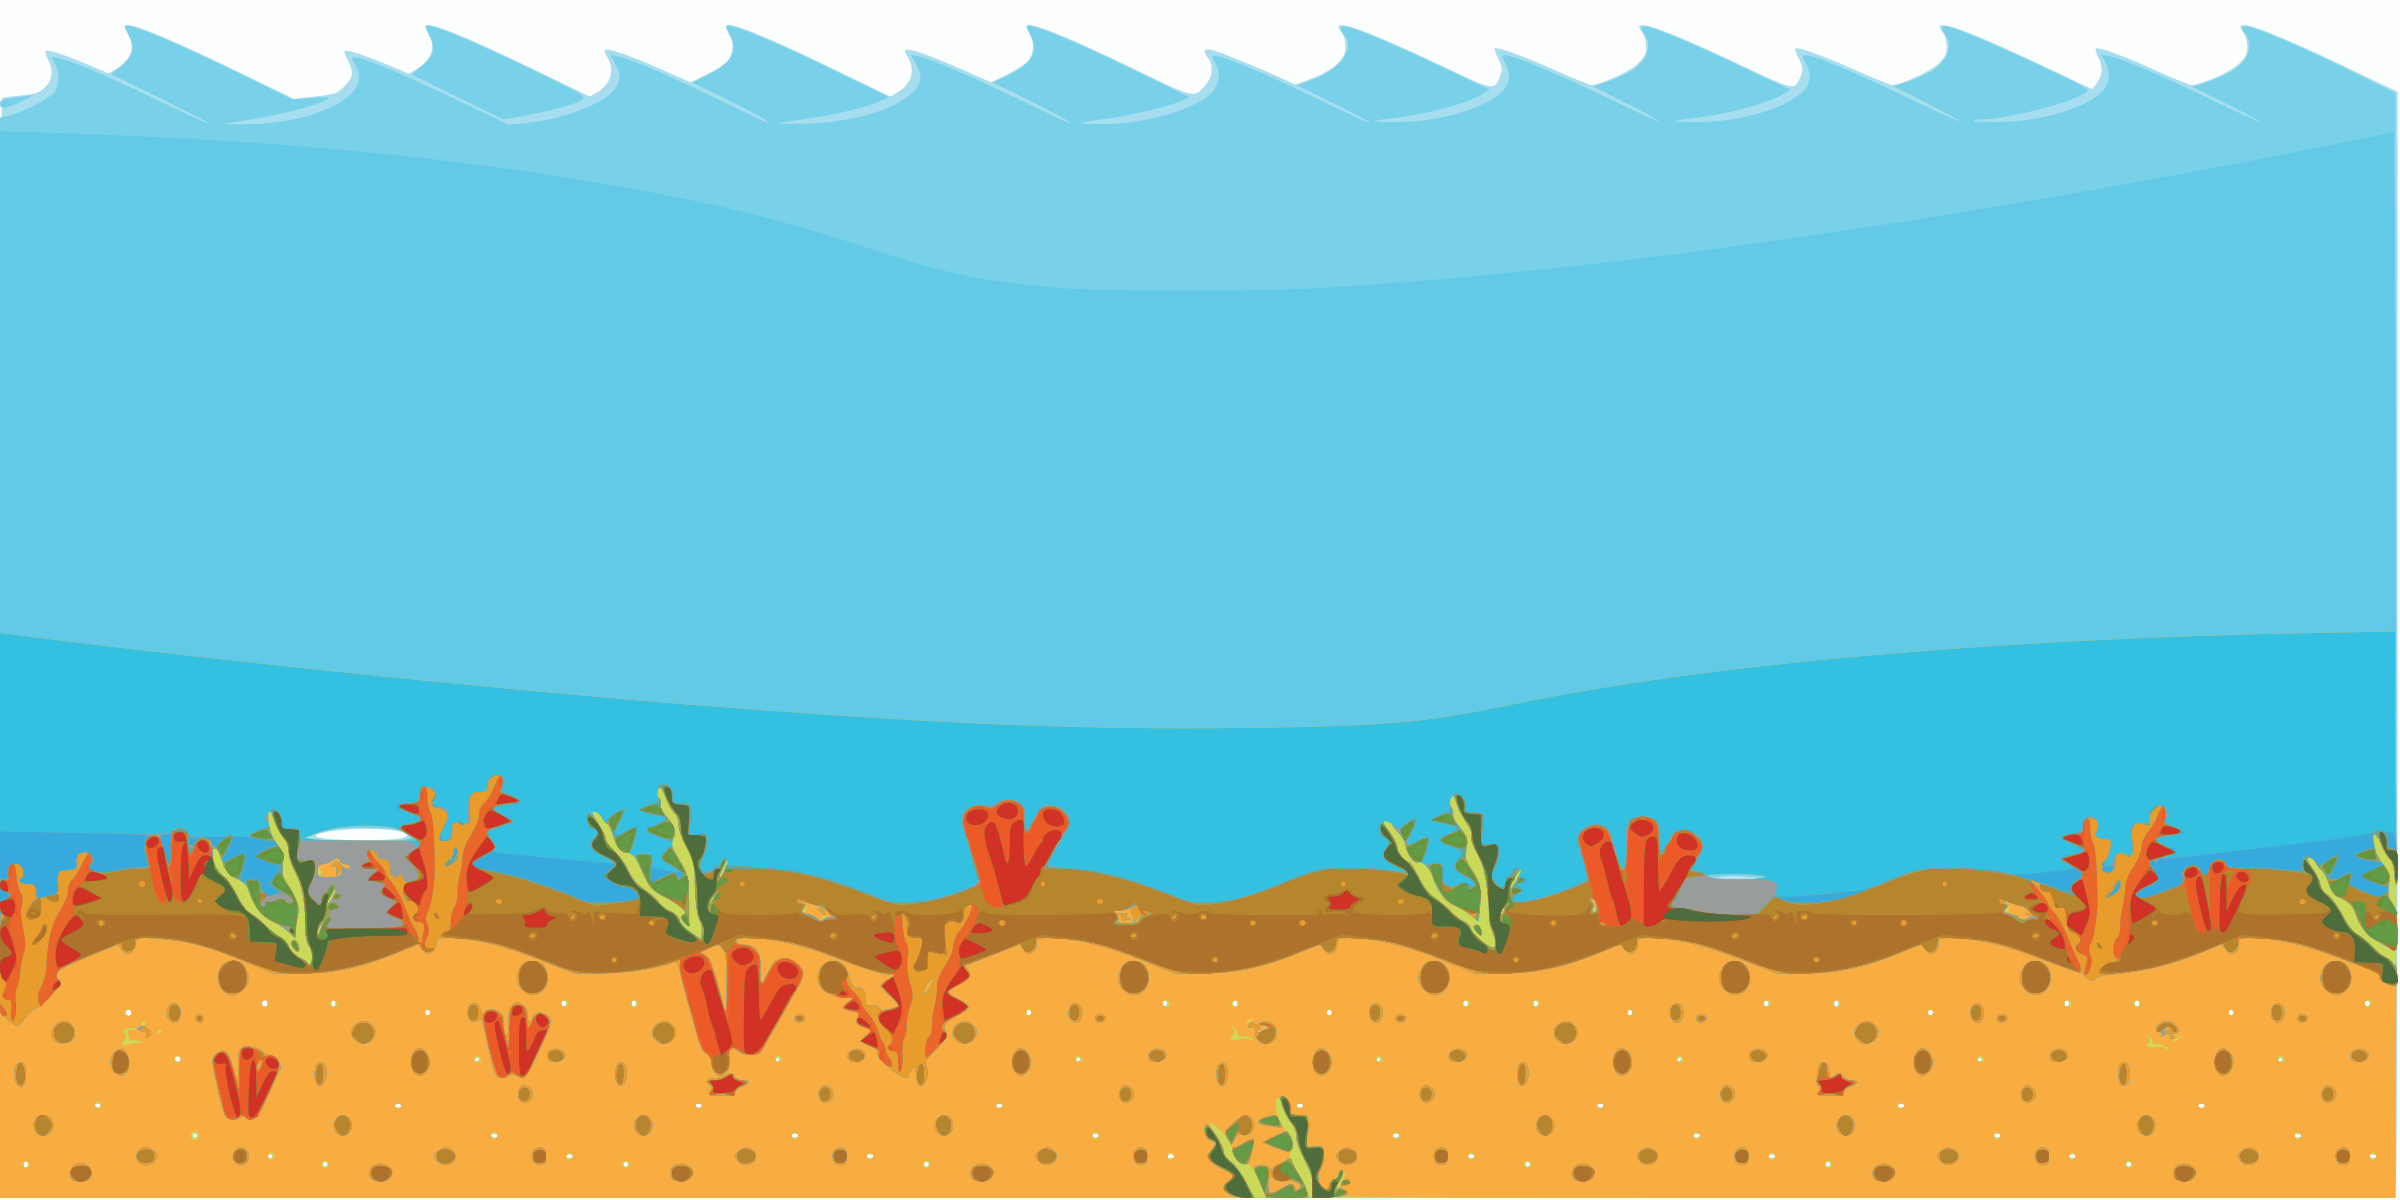 Sea clipart #6, Download drawings